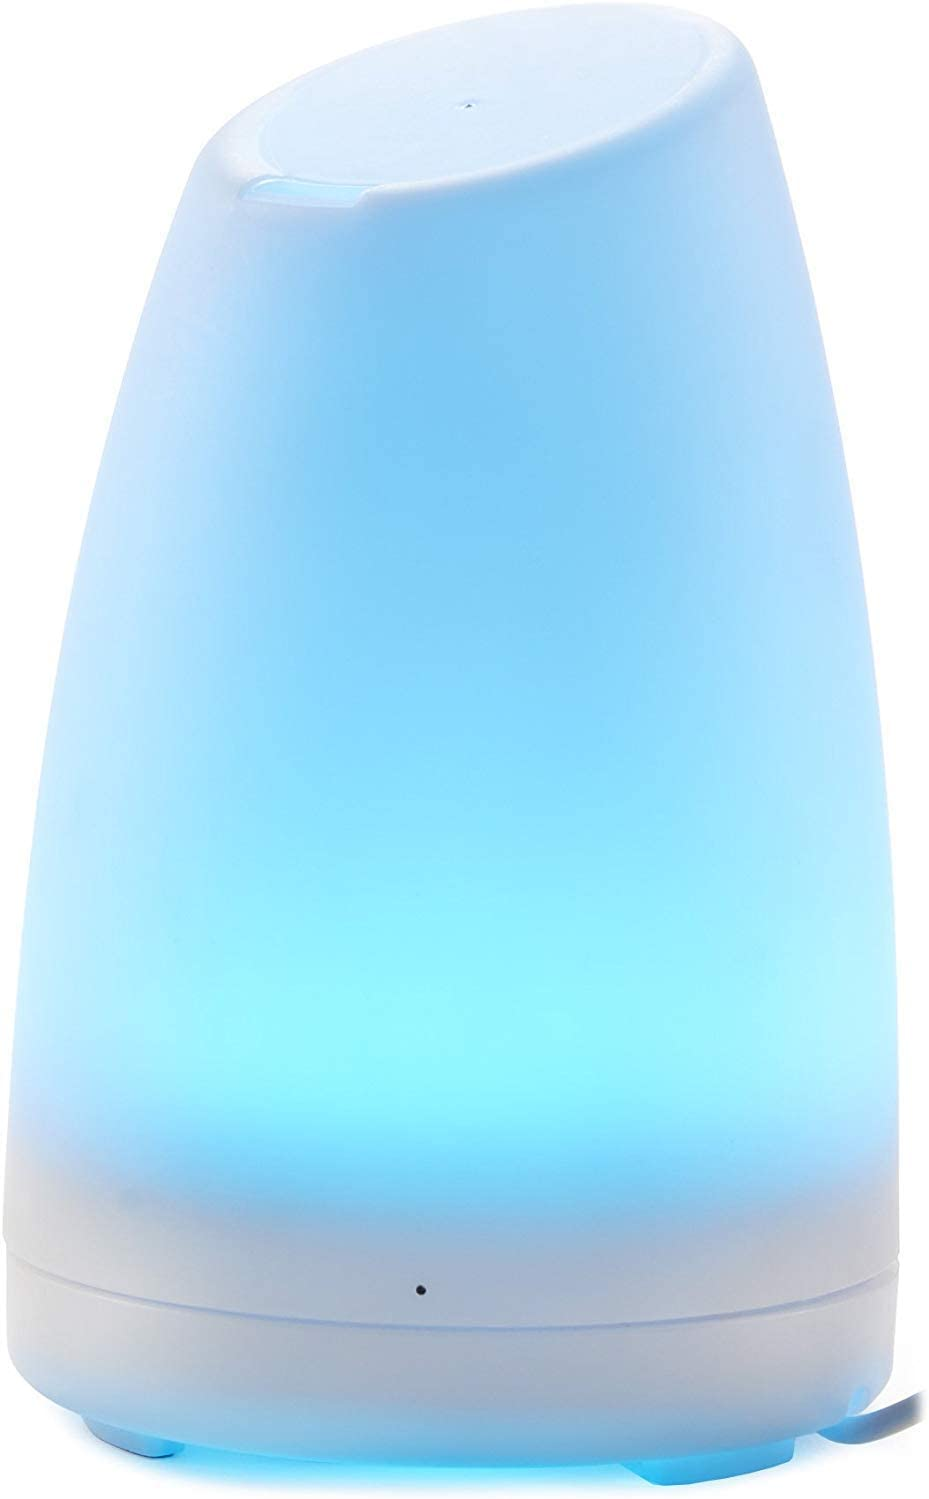 Aroma Diffuser Andrew James 120ml LED Colour Changing Aromatherapy Humidifier, Ultrasonic Air Purifier